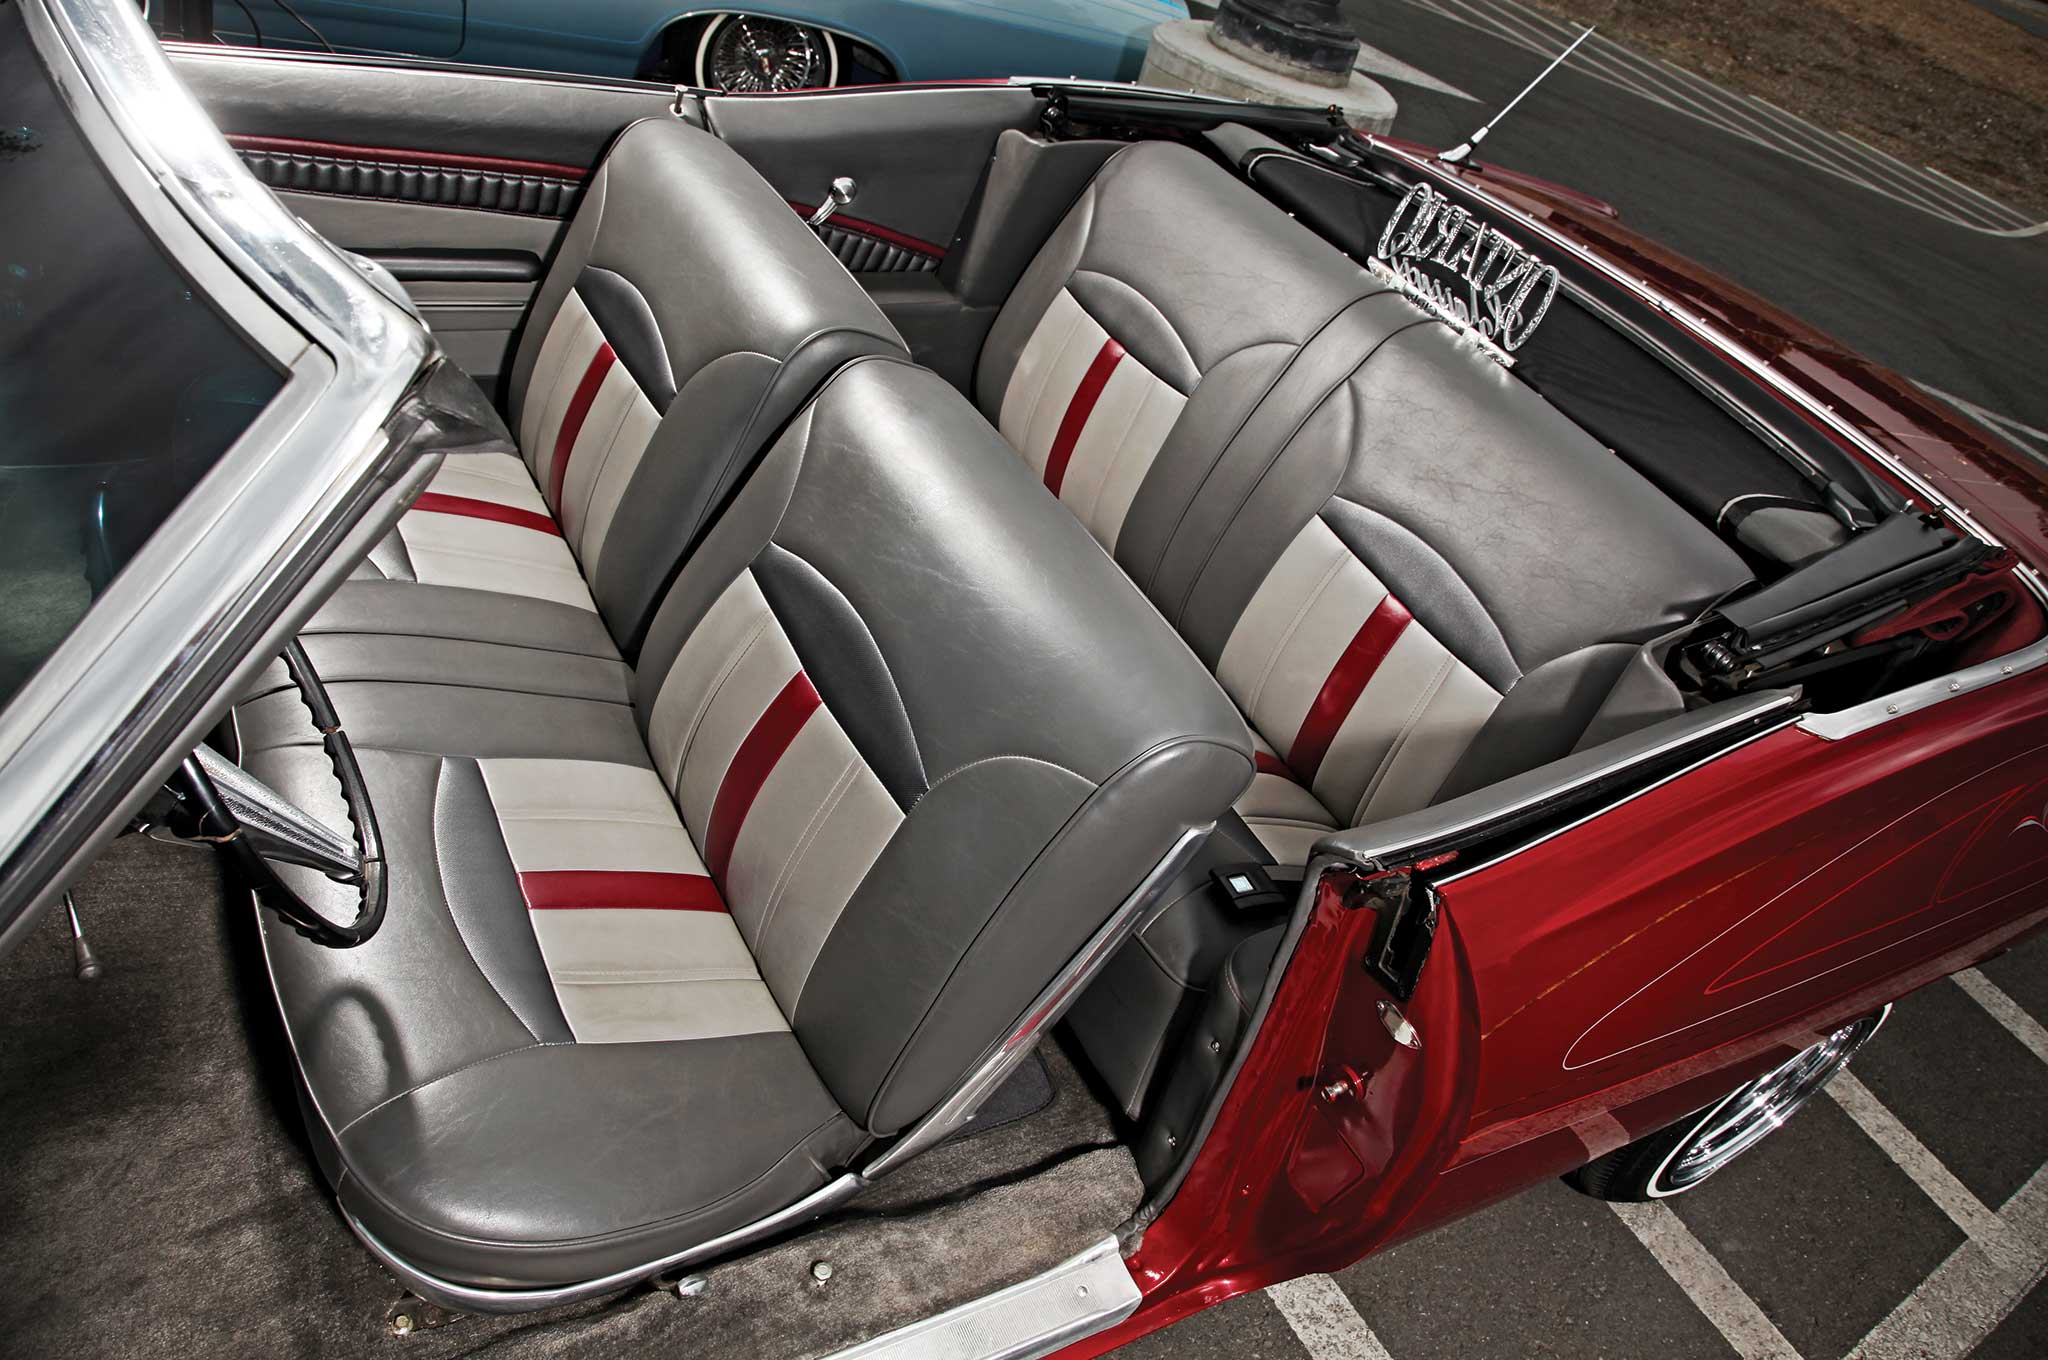 1968-chevrolet-impala-convertible-gray-and-charcoal-vinyl-interior